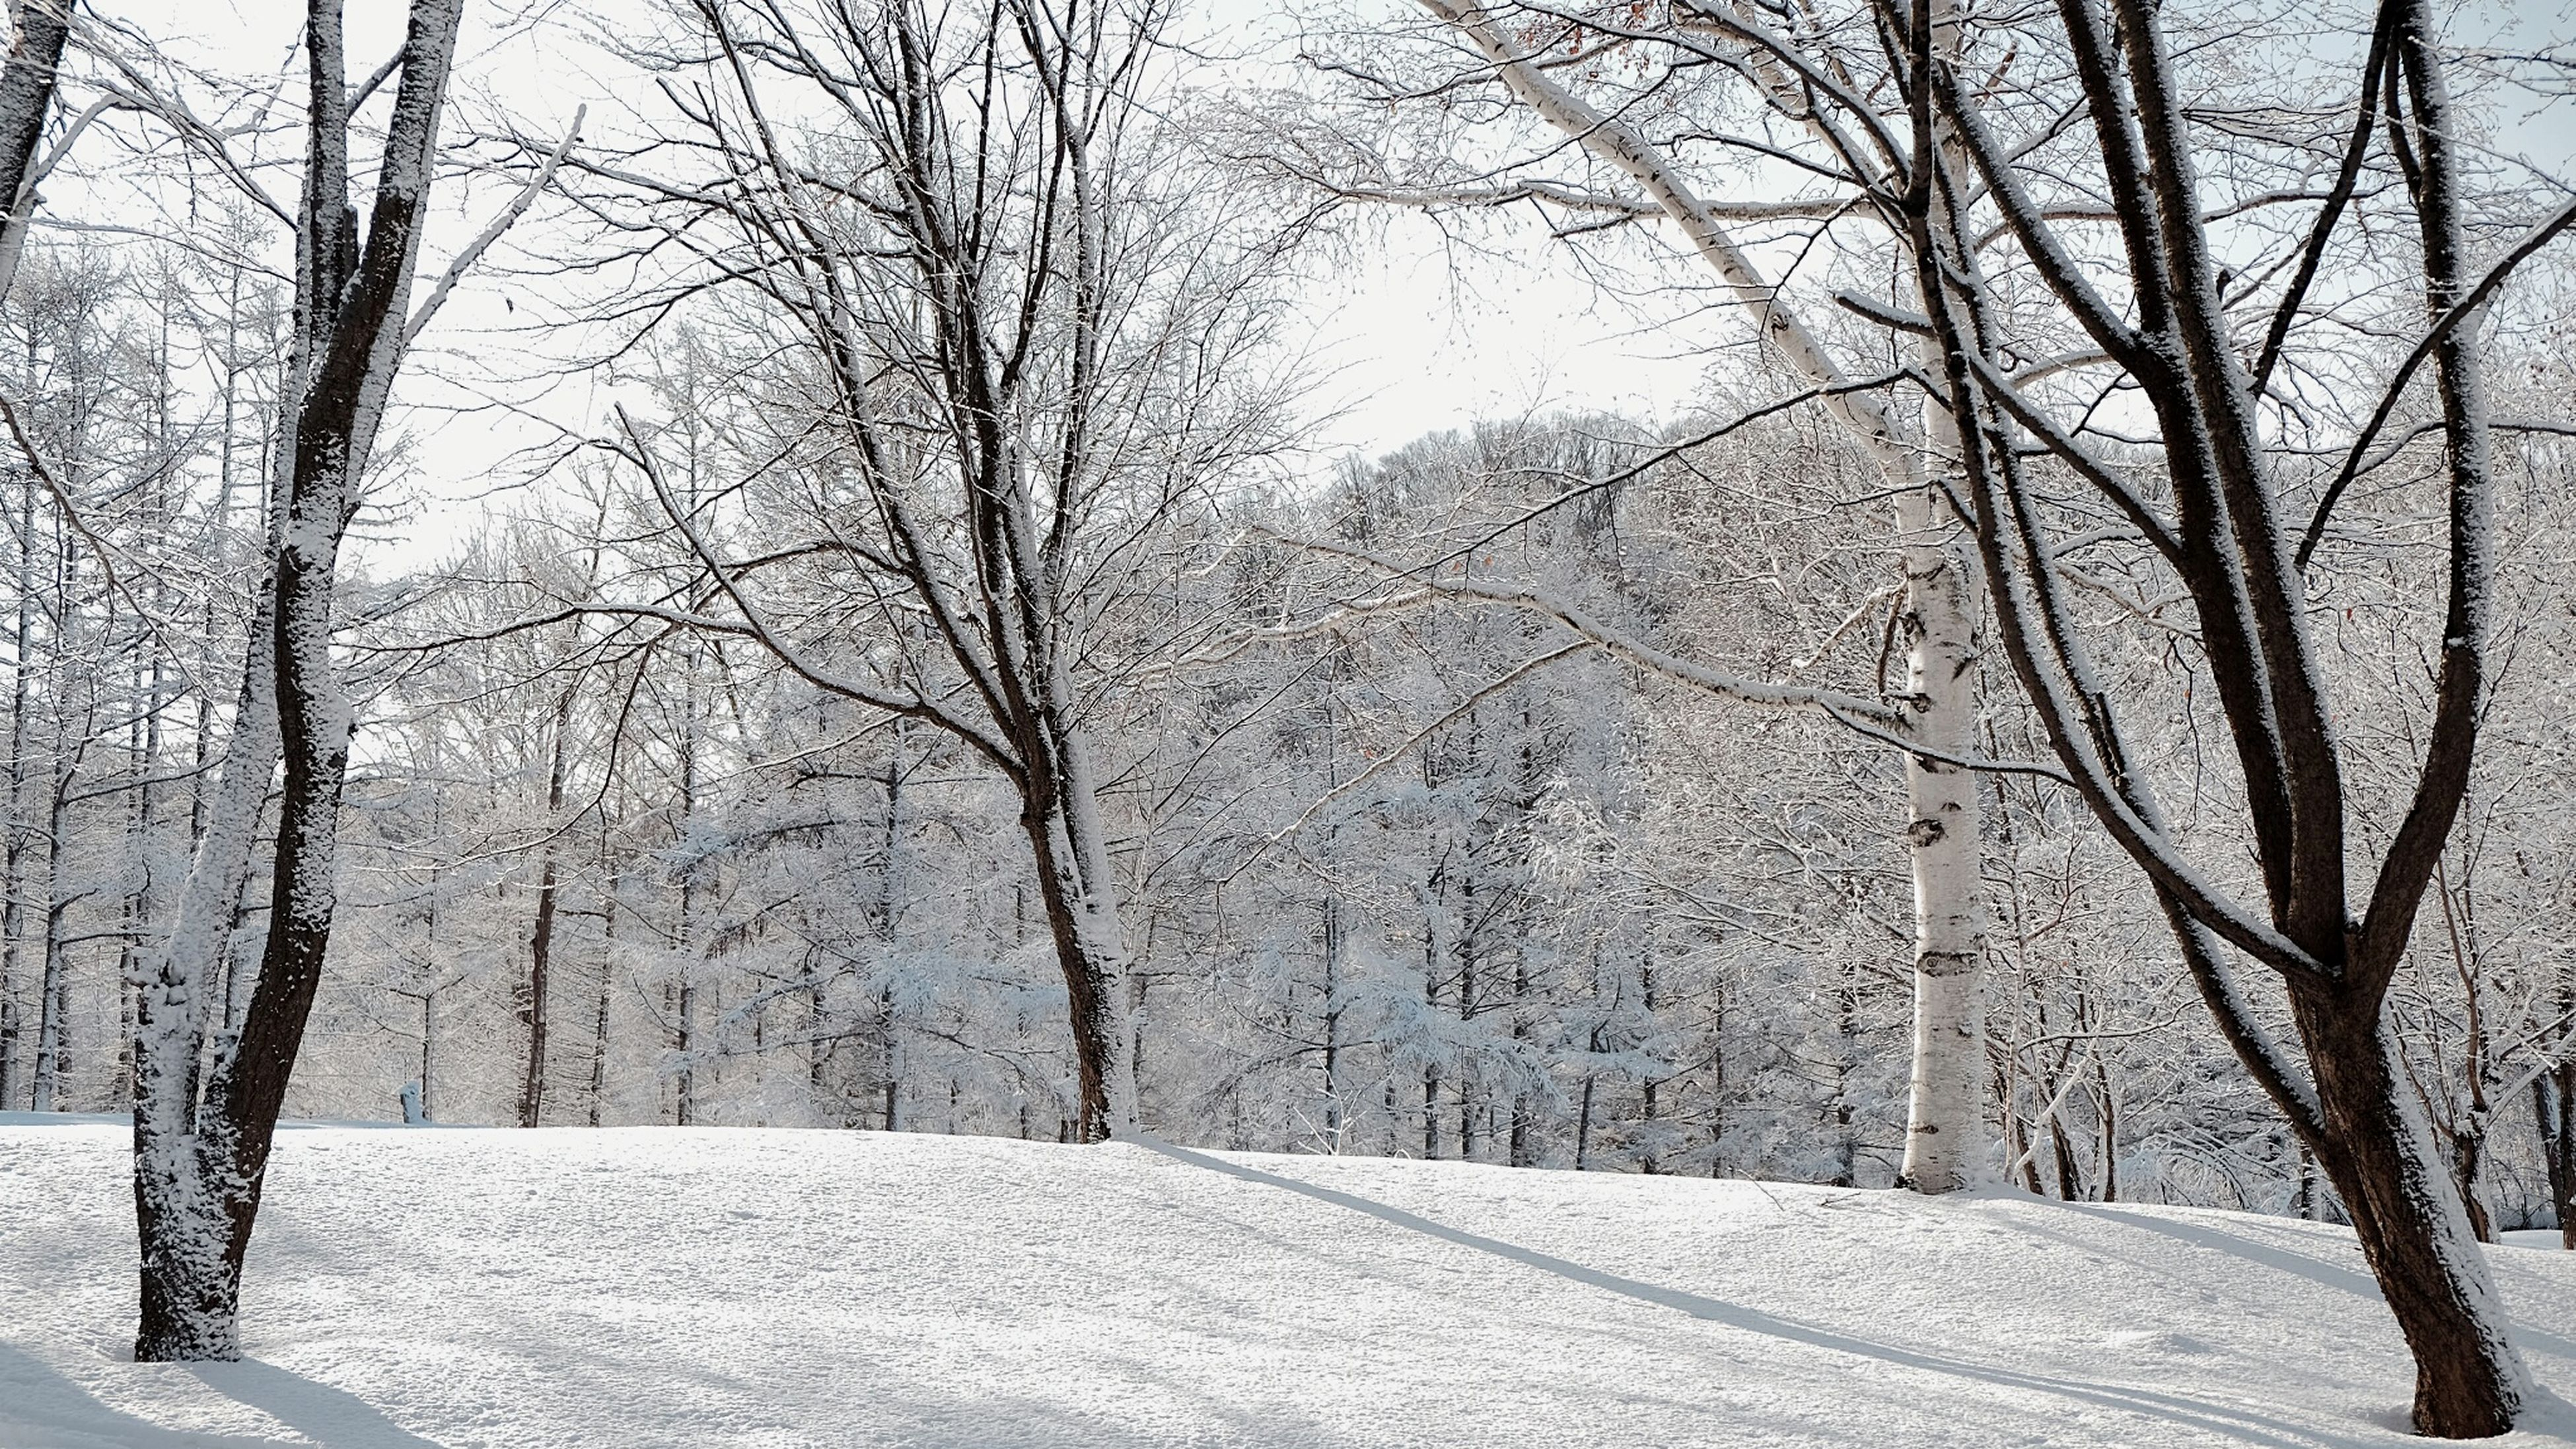 snow, winter, cold temperature, bare tree, tree, season, weather, covering, branch, tranquility, tranquil scene, nature, the way forward, landscape, frozen, tree trunk, white color, scenics, snow covered, beauty in nature